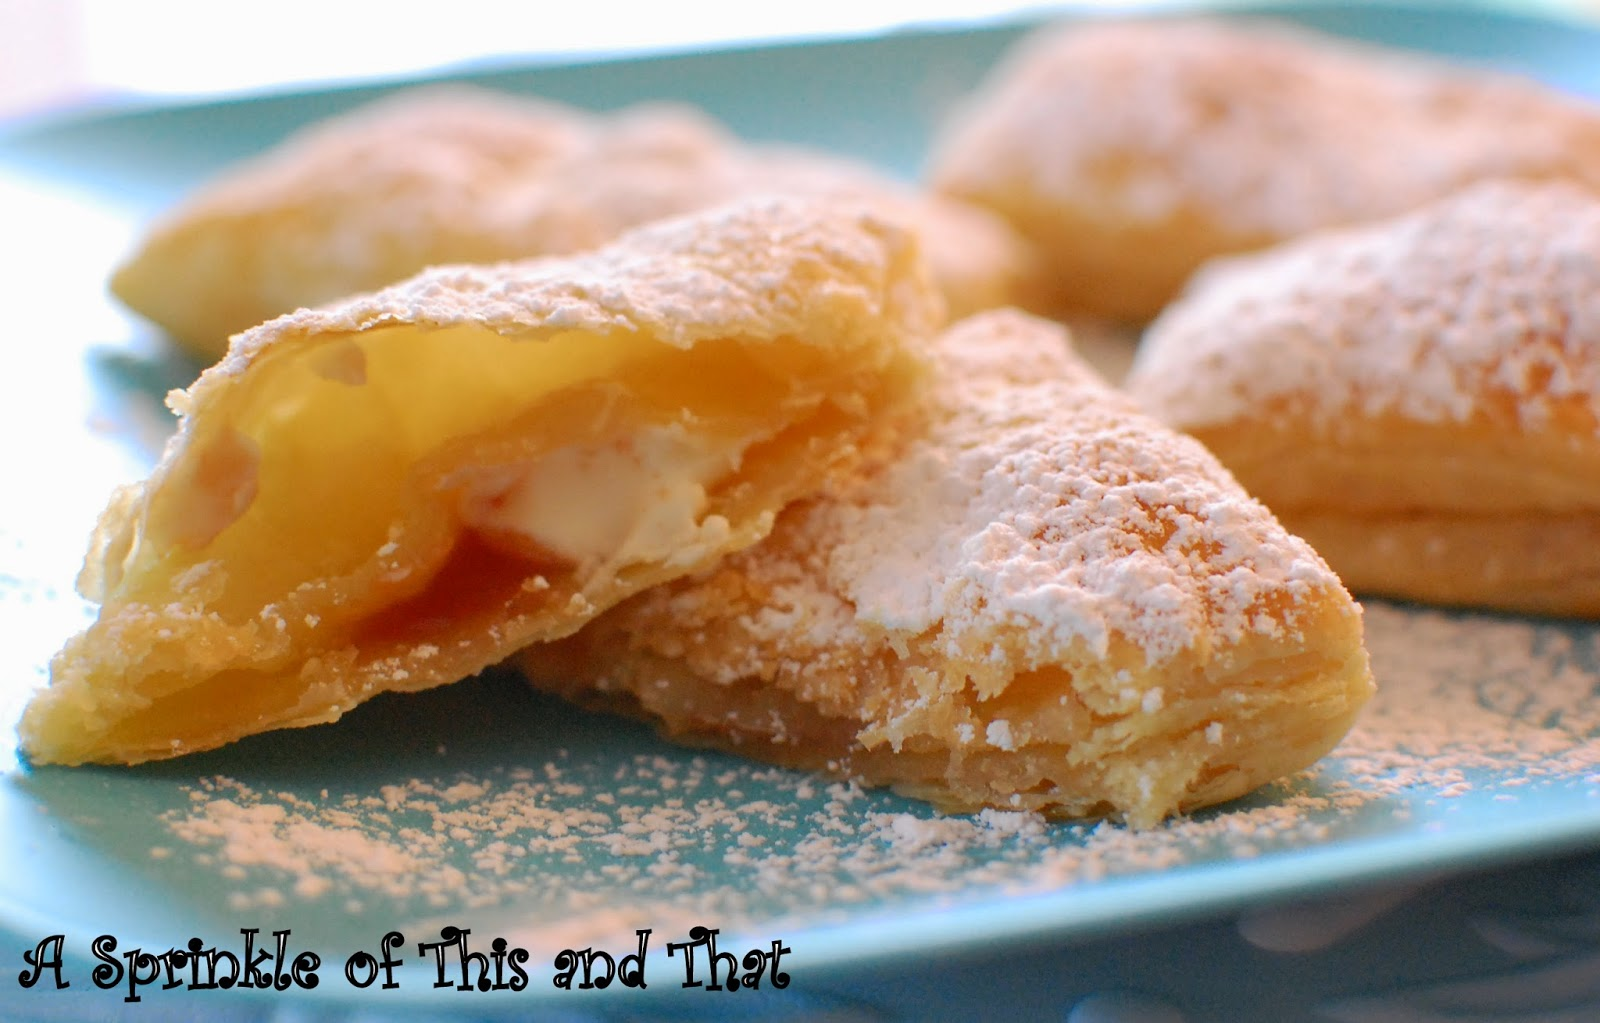 Guava+and+Cream+Cheese+Pockets-004.JPG